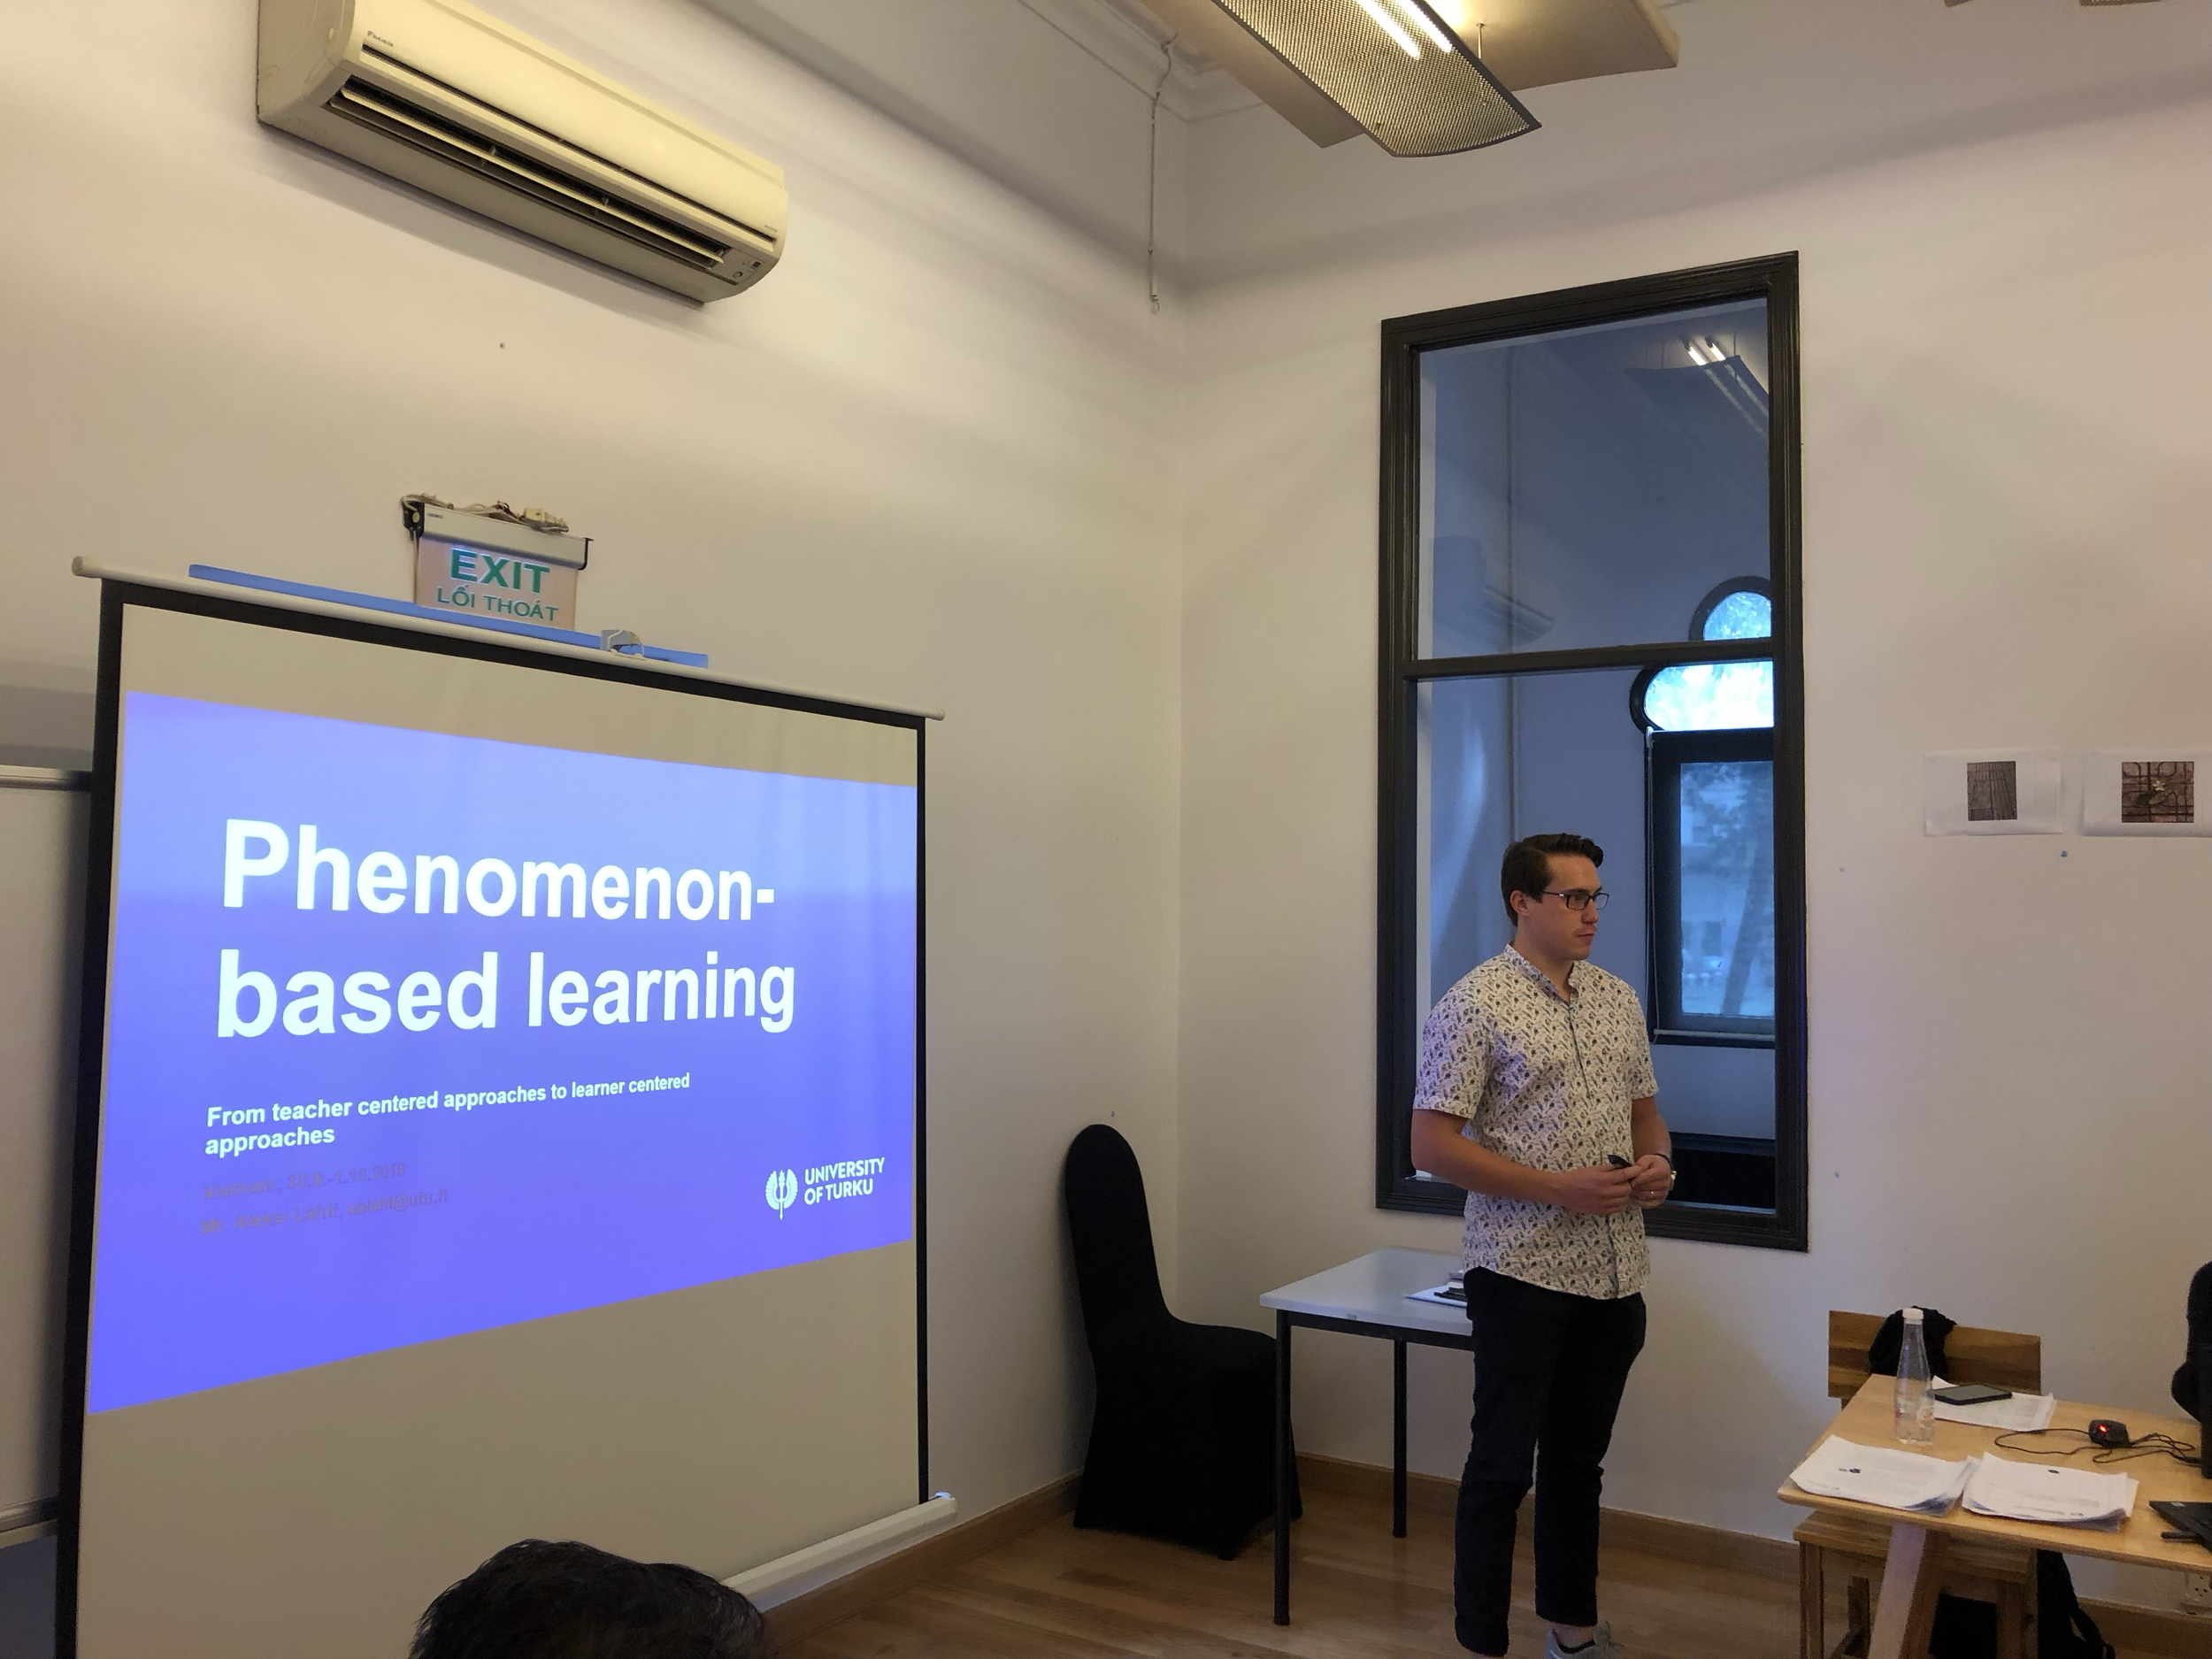 Aleksi Lahti from Finland's Turku University sharing some of the nuts and bolts of phenomenon-based learning.